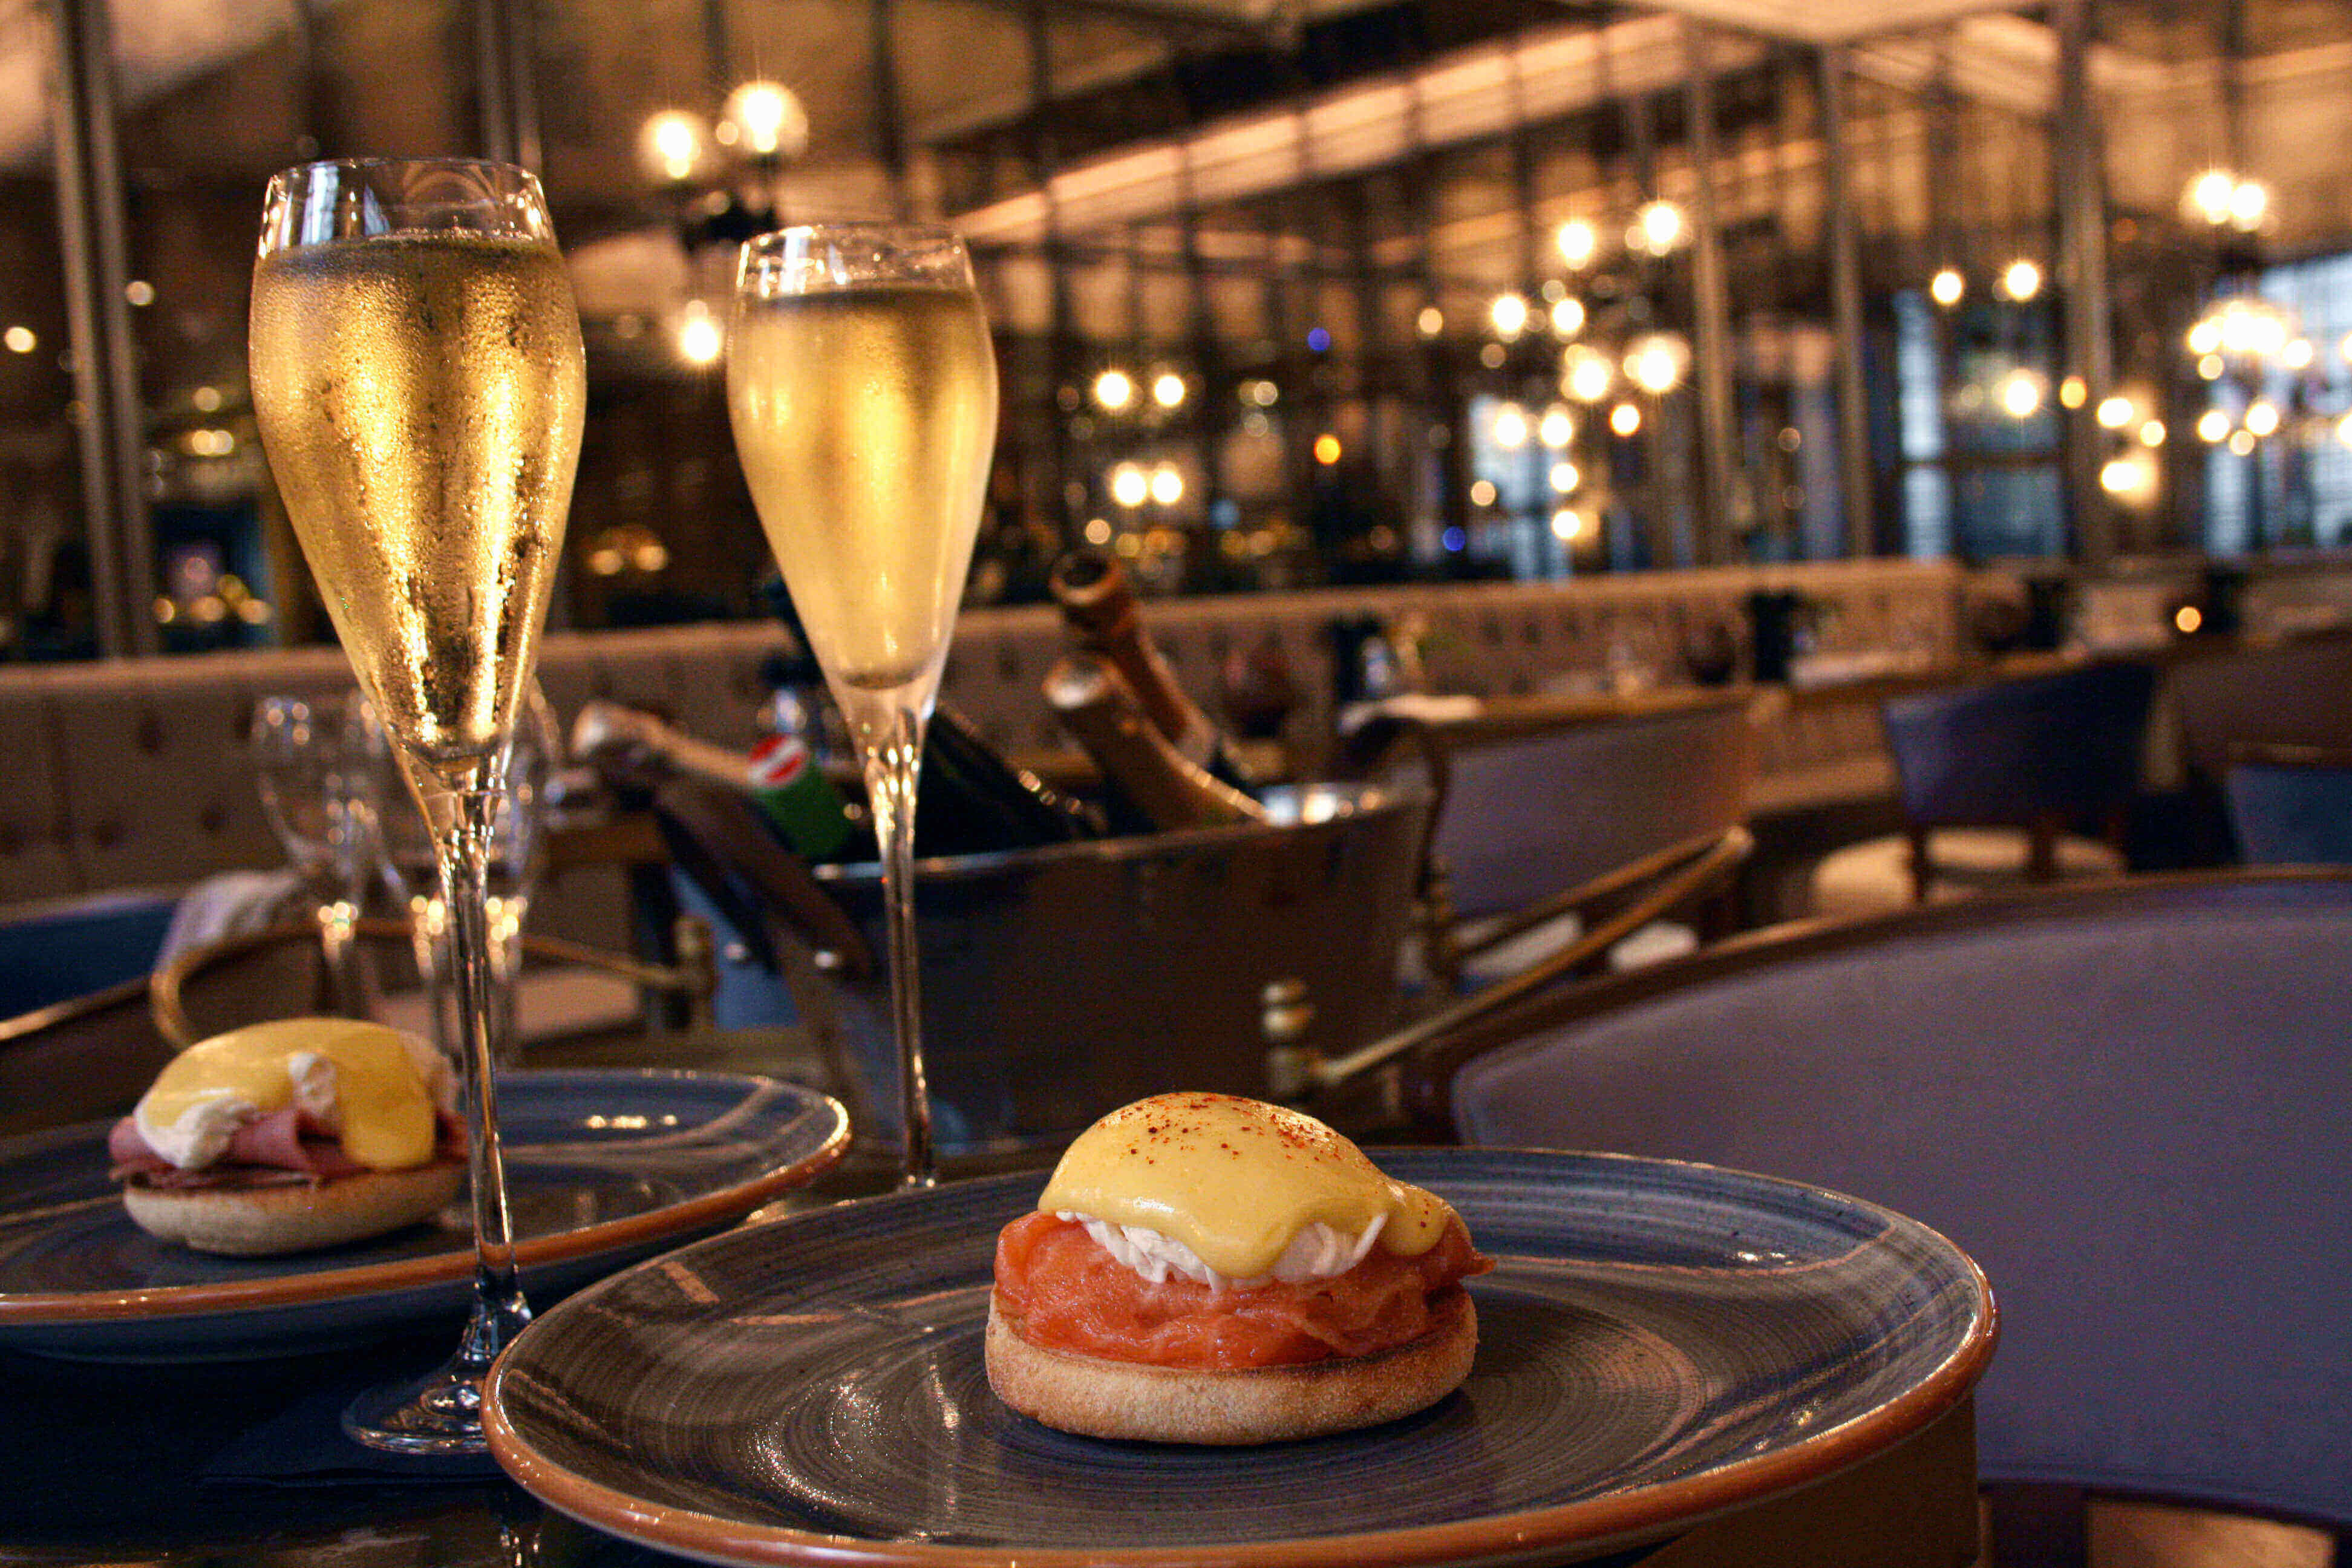 DUKES London, Park Lane, Luxury Brunch, Luxury Breakfast, Brunch in Mayfair, 5* Hotel